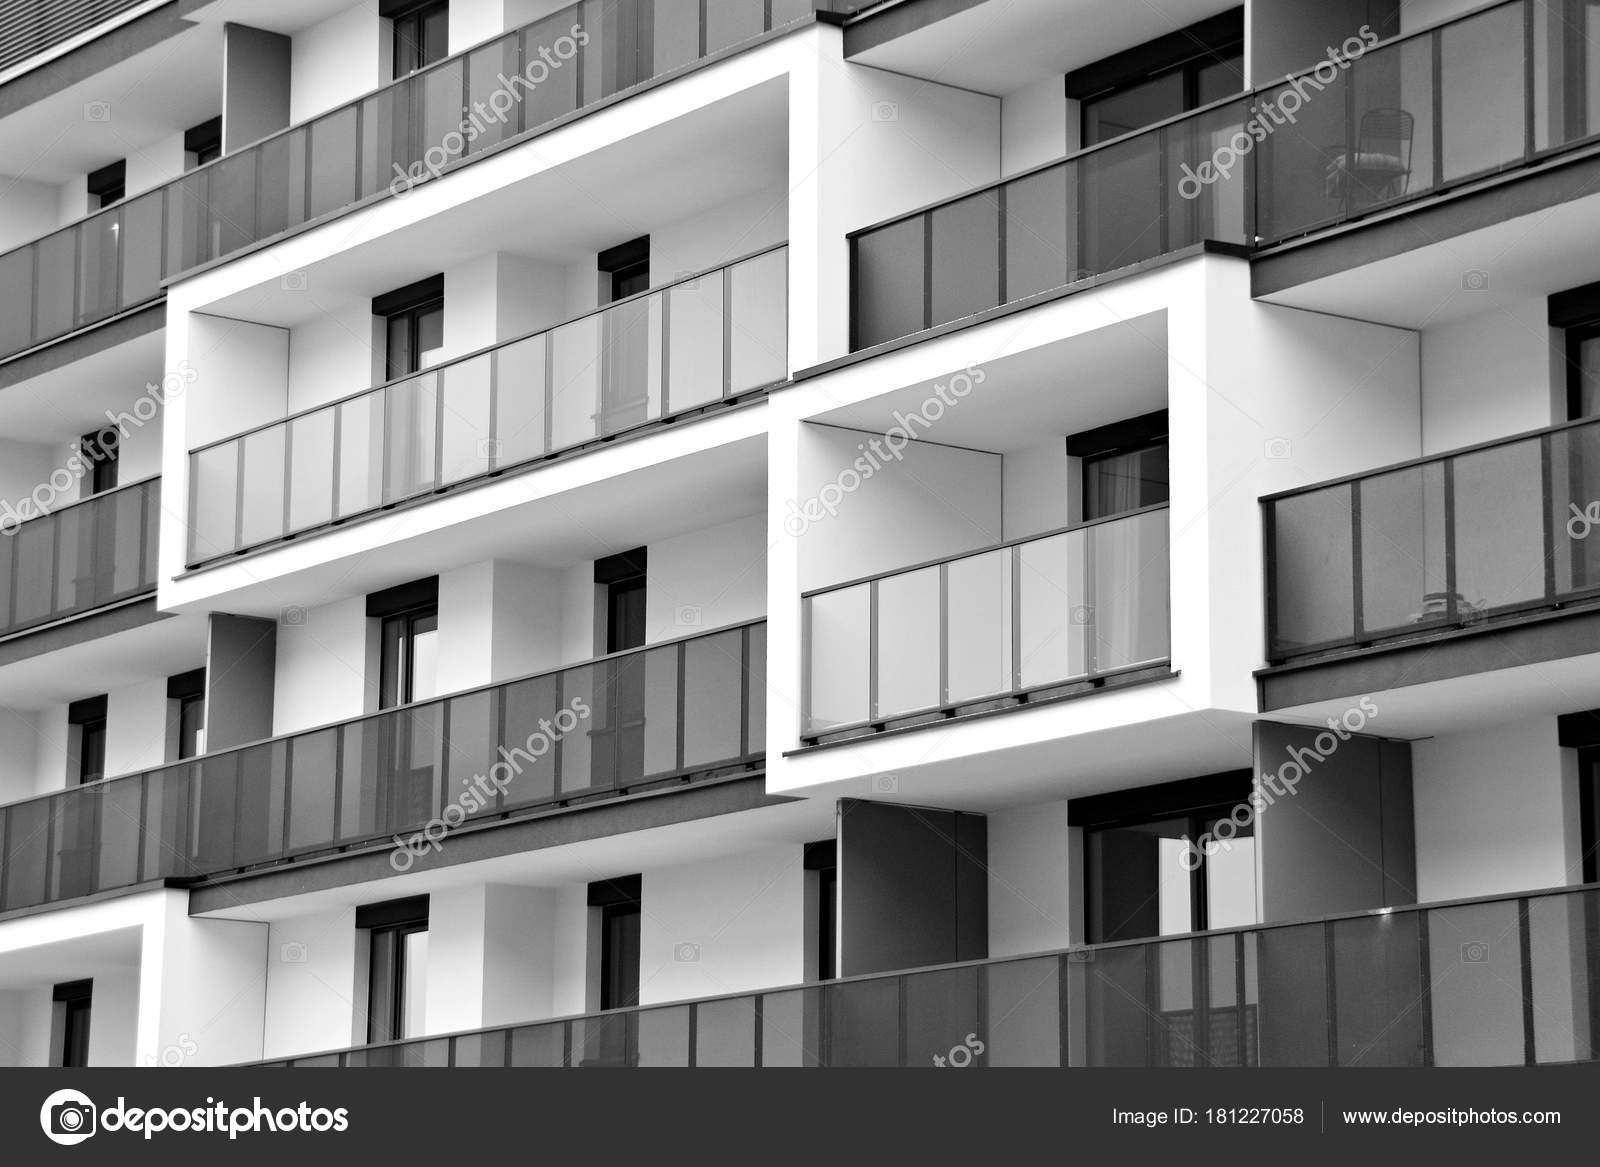 Superior Modern Apartment Buildings Facade Modern Apartment Building Black White U2014  Stock Photo